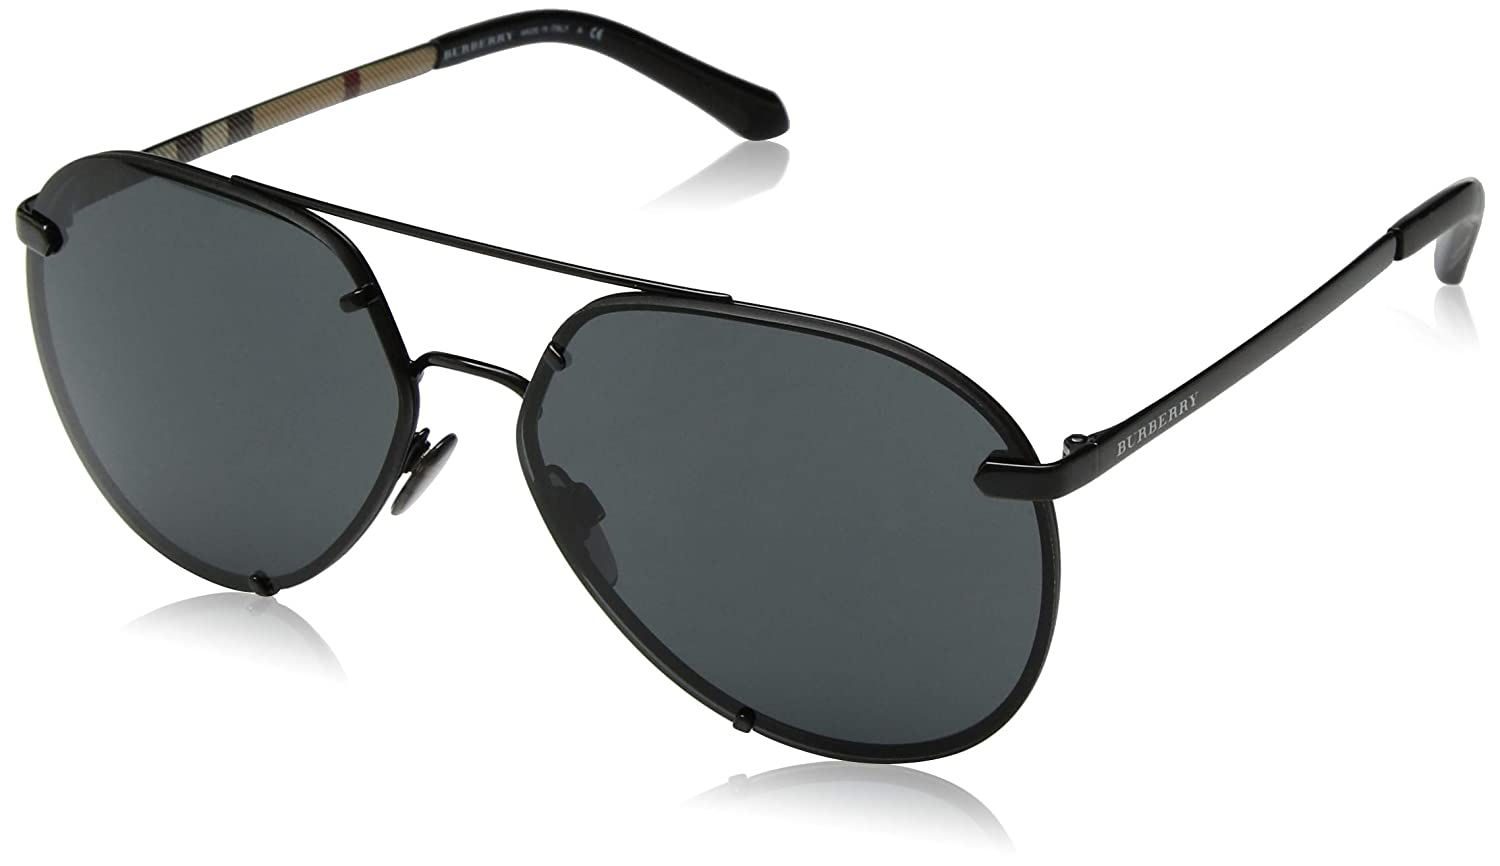 cd956a68362 Amazon.com  Burberry Women s 0BE3099 Black Grey One Size  Clothing